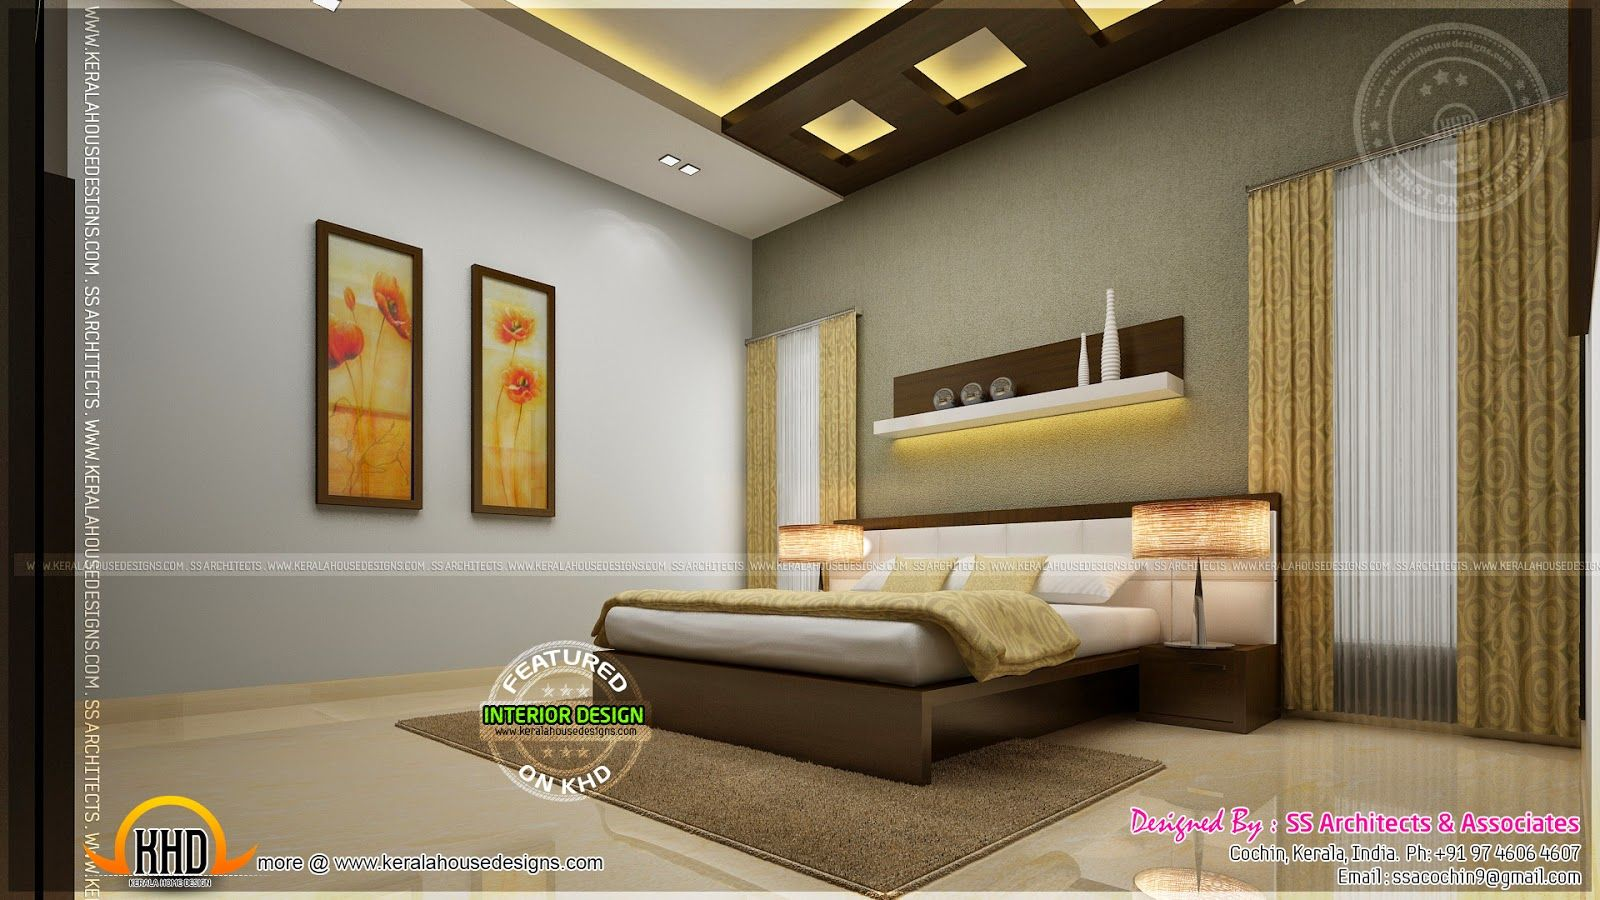 Indian master bedroom interior design google search for Interior house design pictures